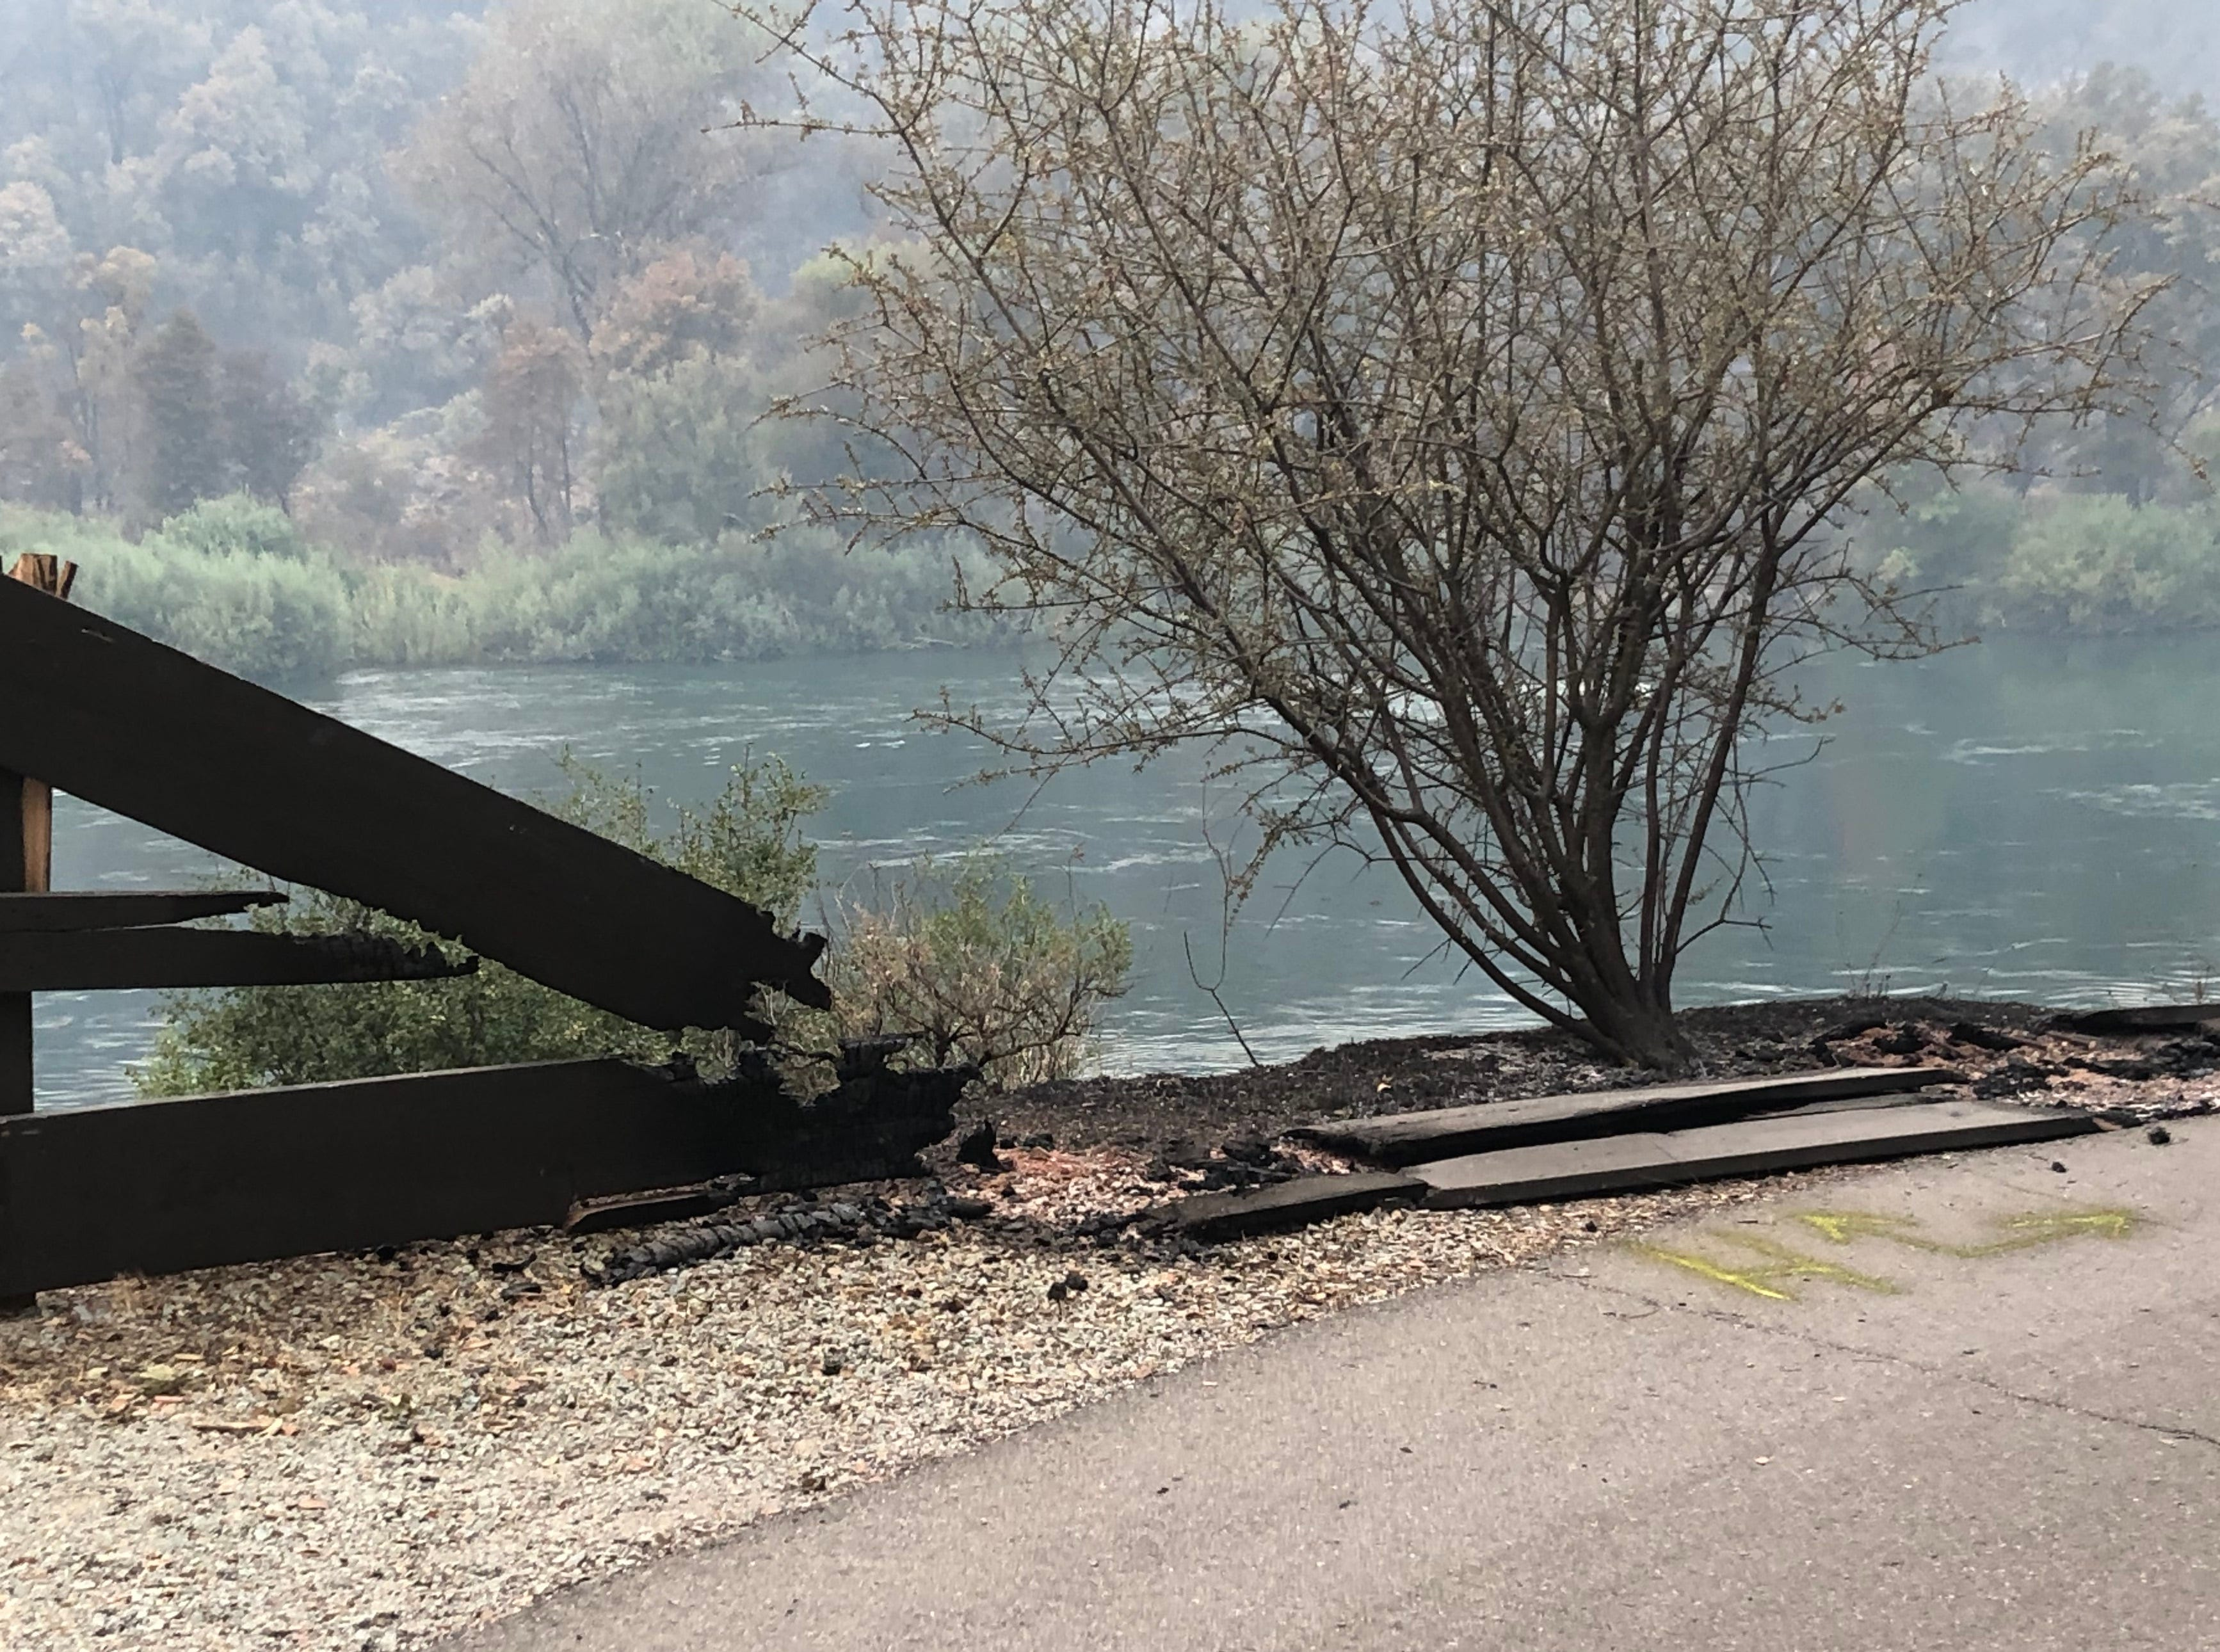 Damage from the Carr Fire on the Sacramento River Trail in Redding.